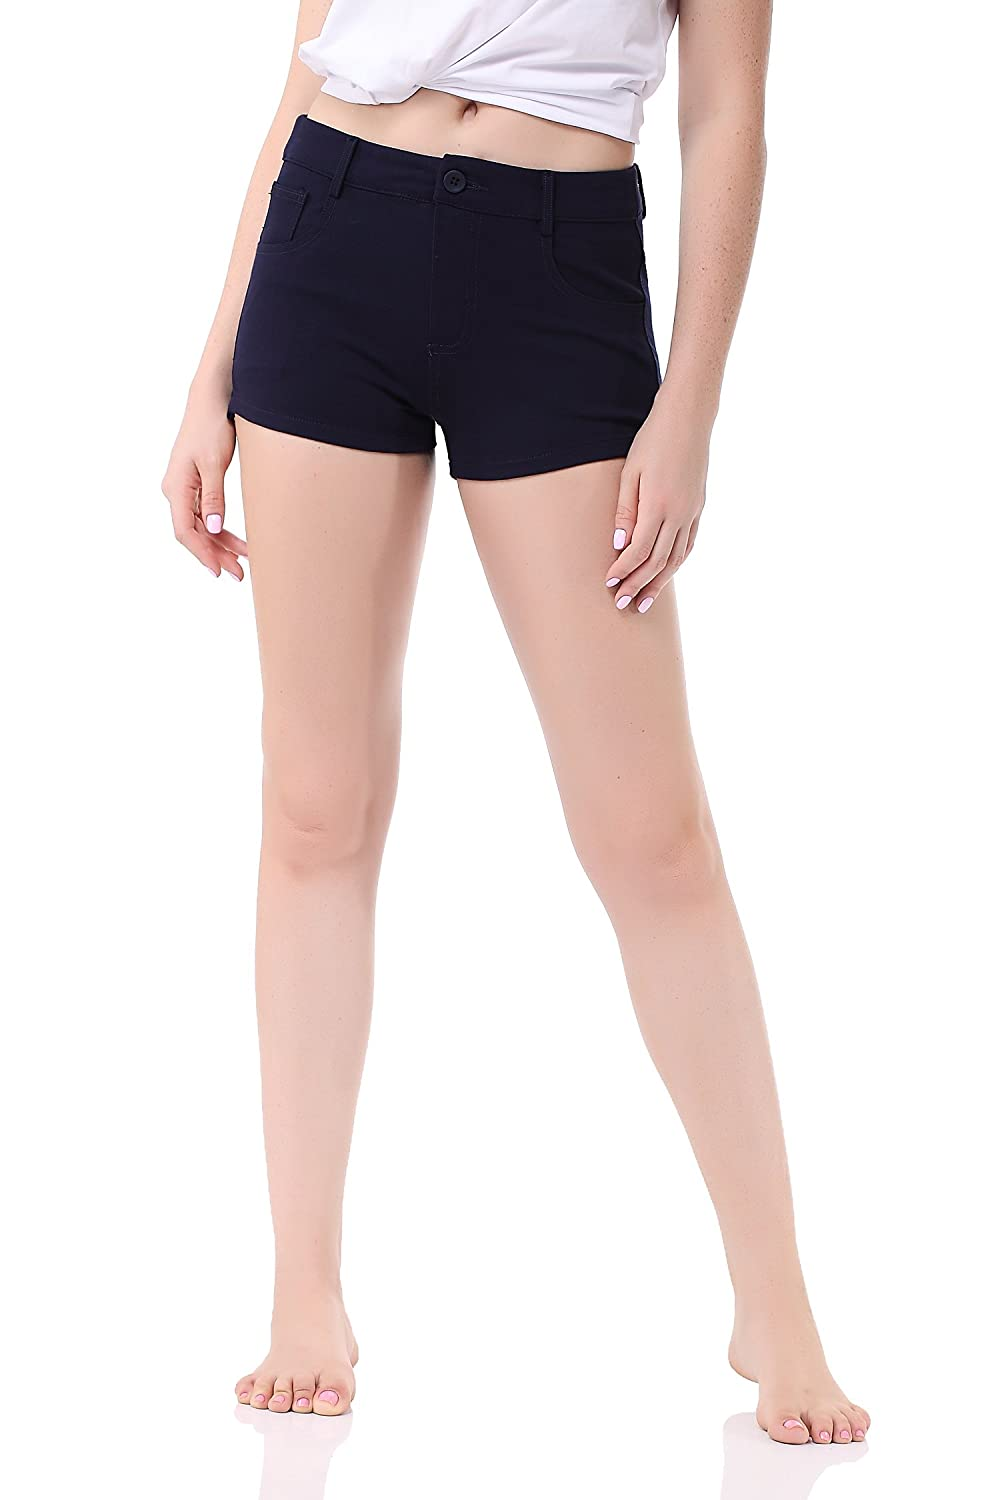 Pau1Hami1ton GP-02 Women's Bermuda Shorts Solid Summer Color Stretch Fitted Relaxed Flat Hot Walking Pants GP-02-1